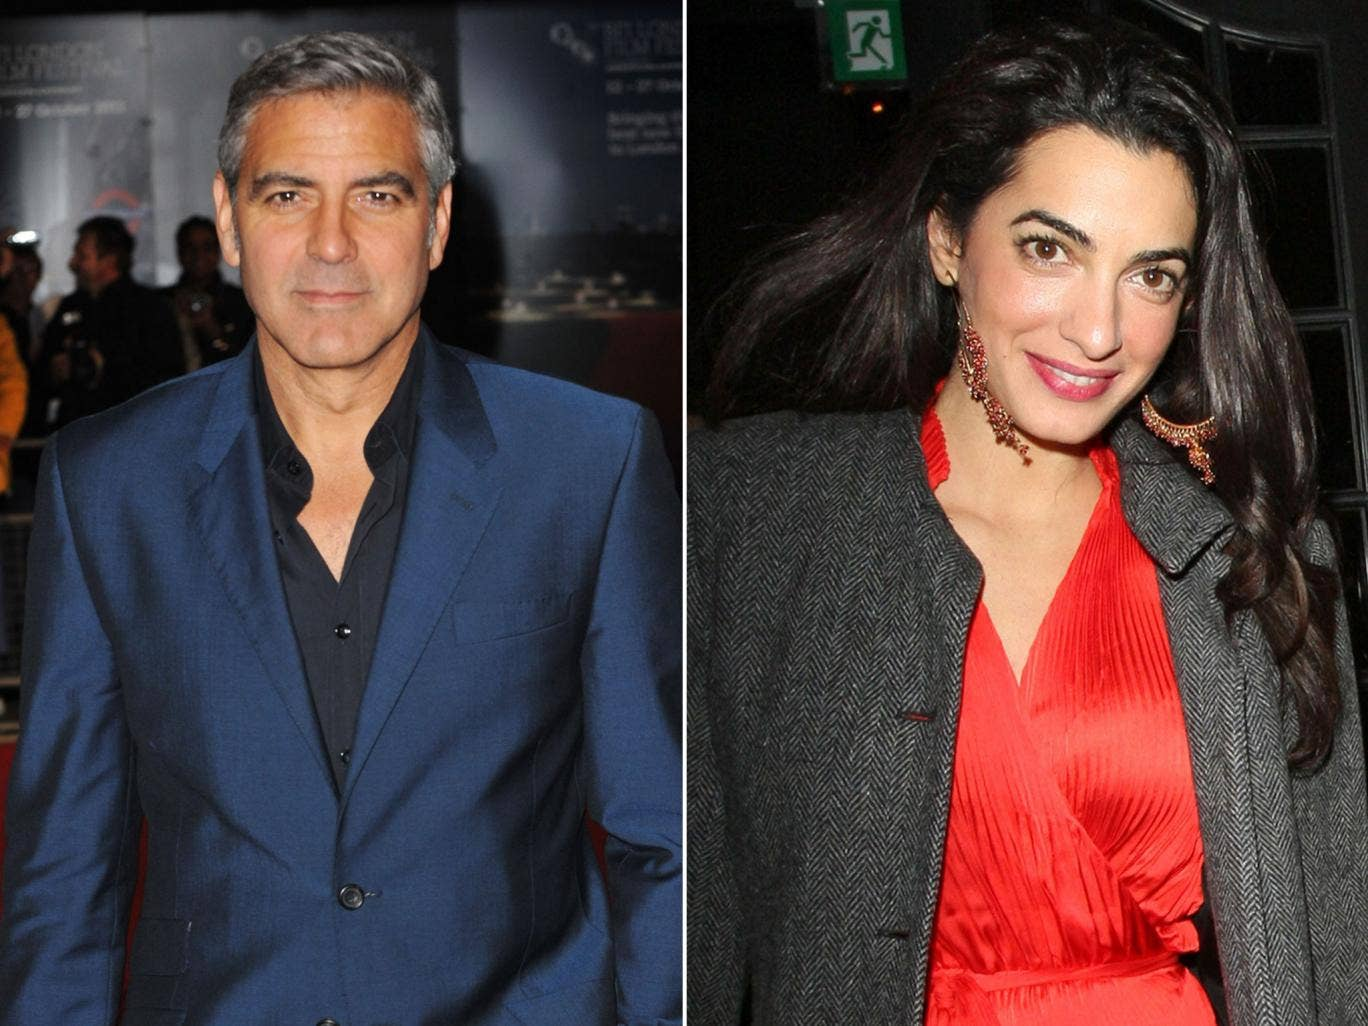 George Clooney and Amal Alamuddin are reportedly engaged